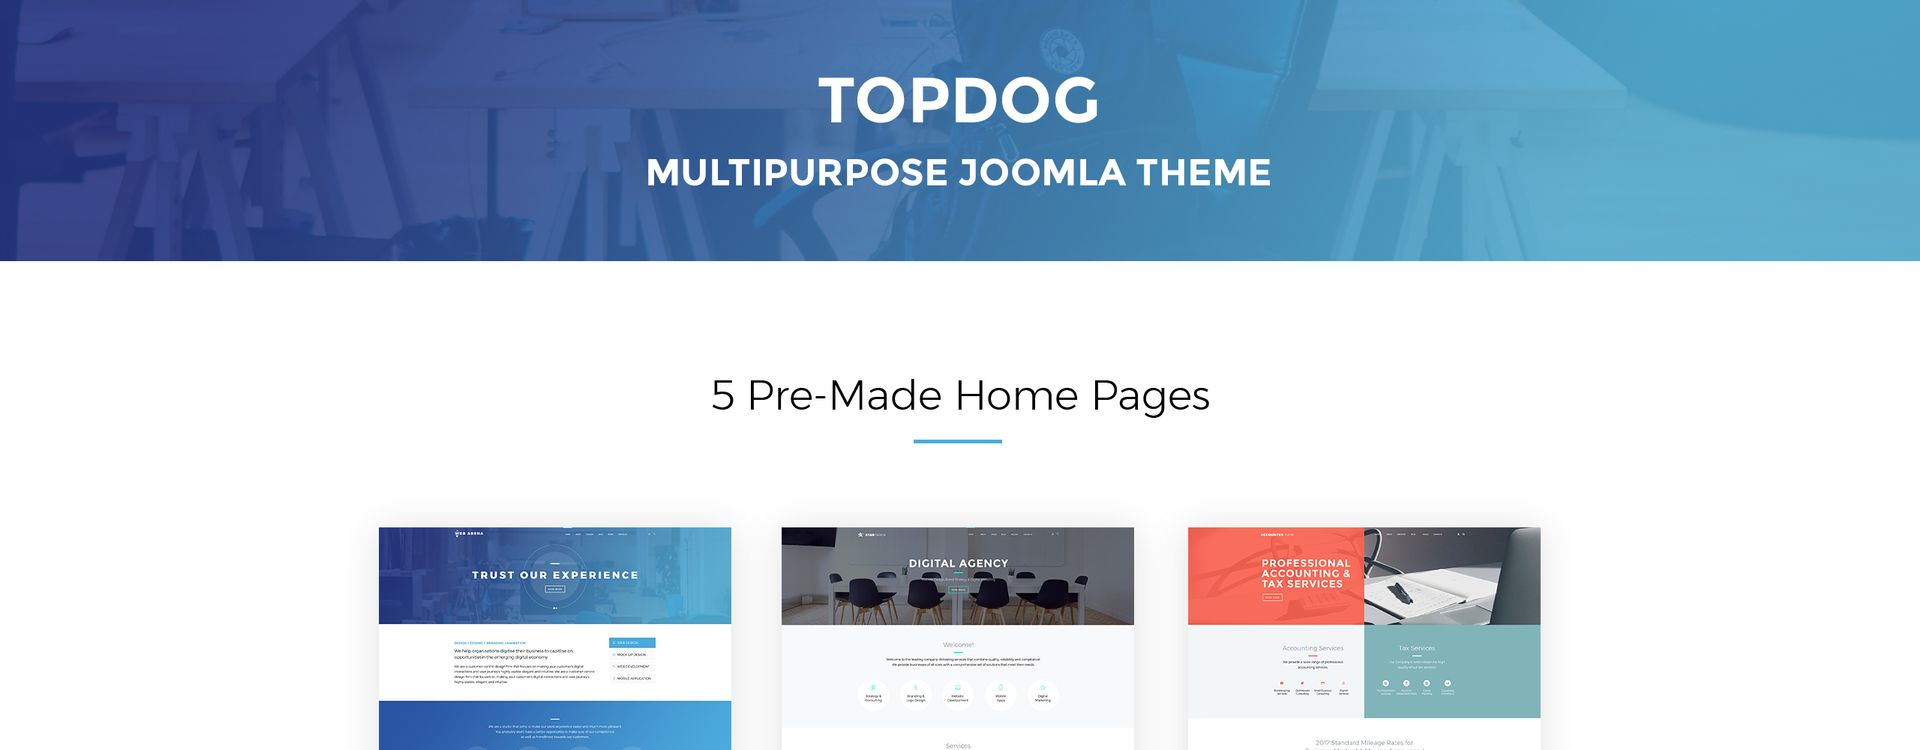 TopDog - Multipurpose Joomla Template